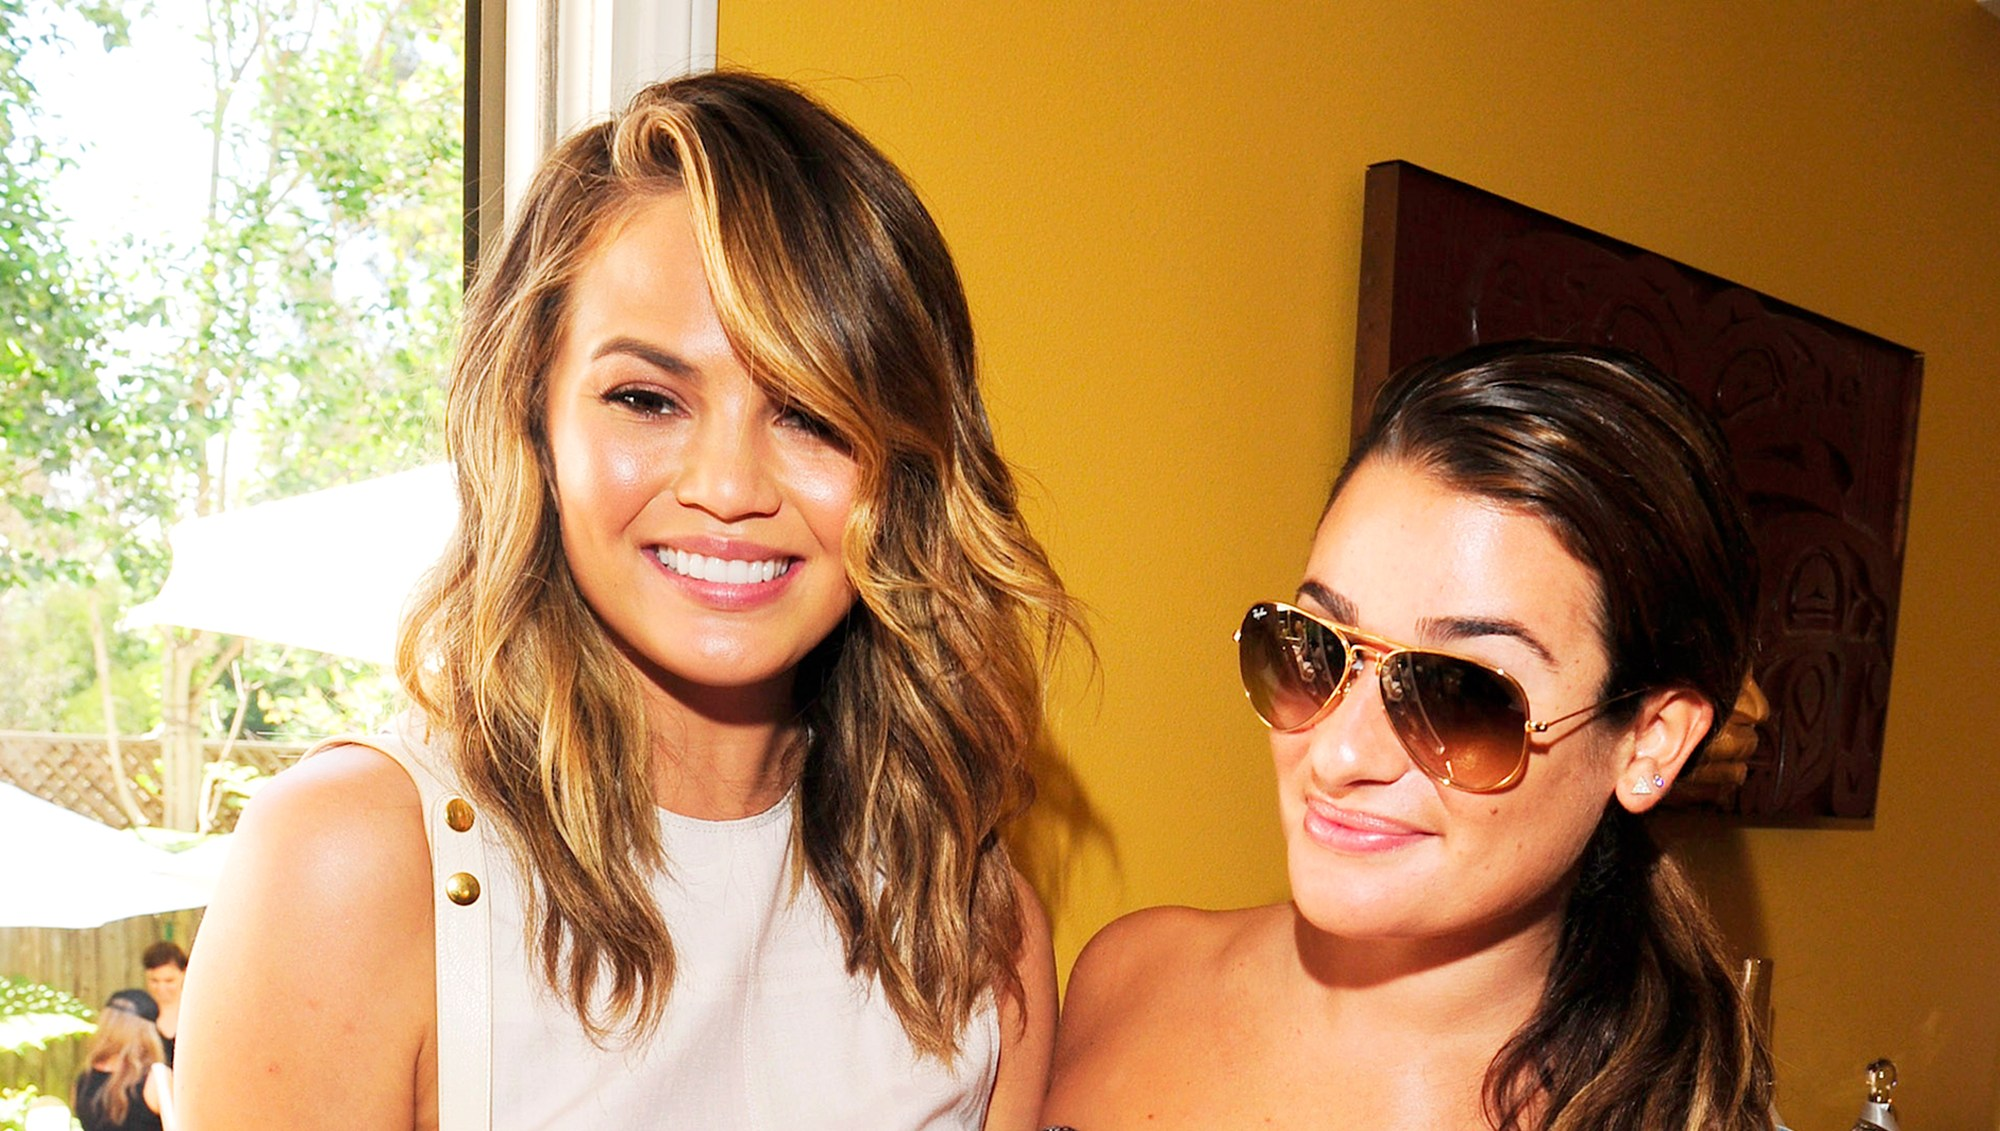 Chrissy Teigen and Lea Michele attend the 2014 Jen Klein Day of Indulgence Party in Los Angeles, California.